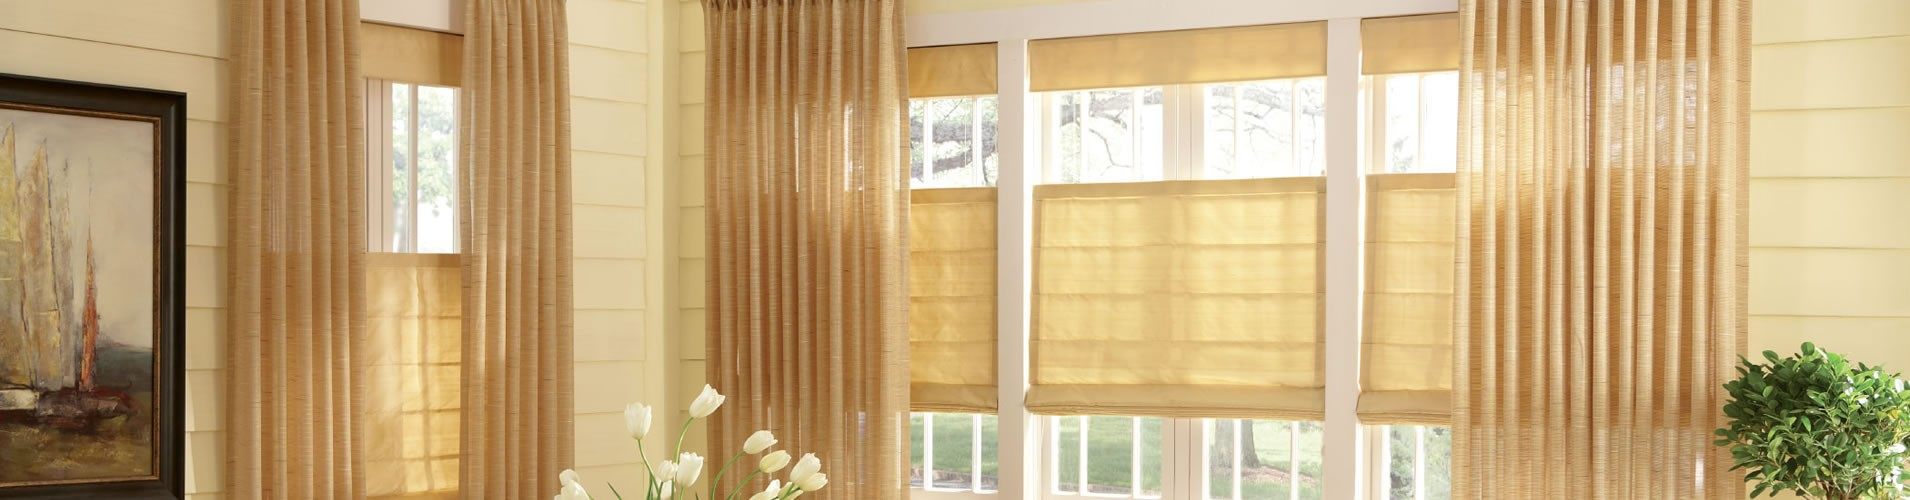 Roman Shades Houston